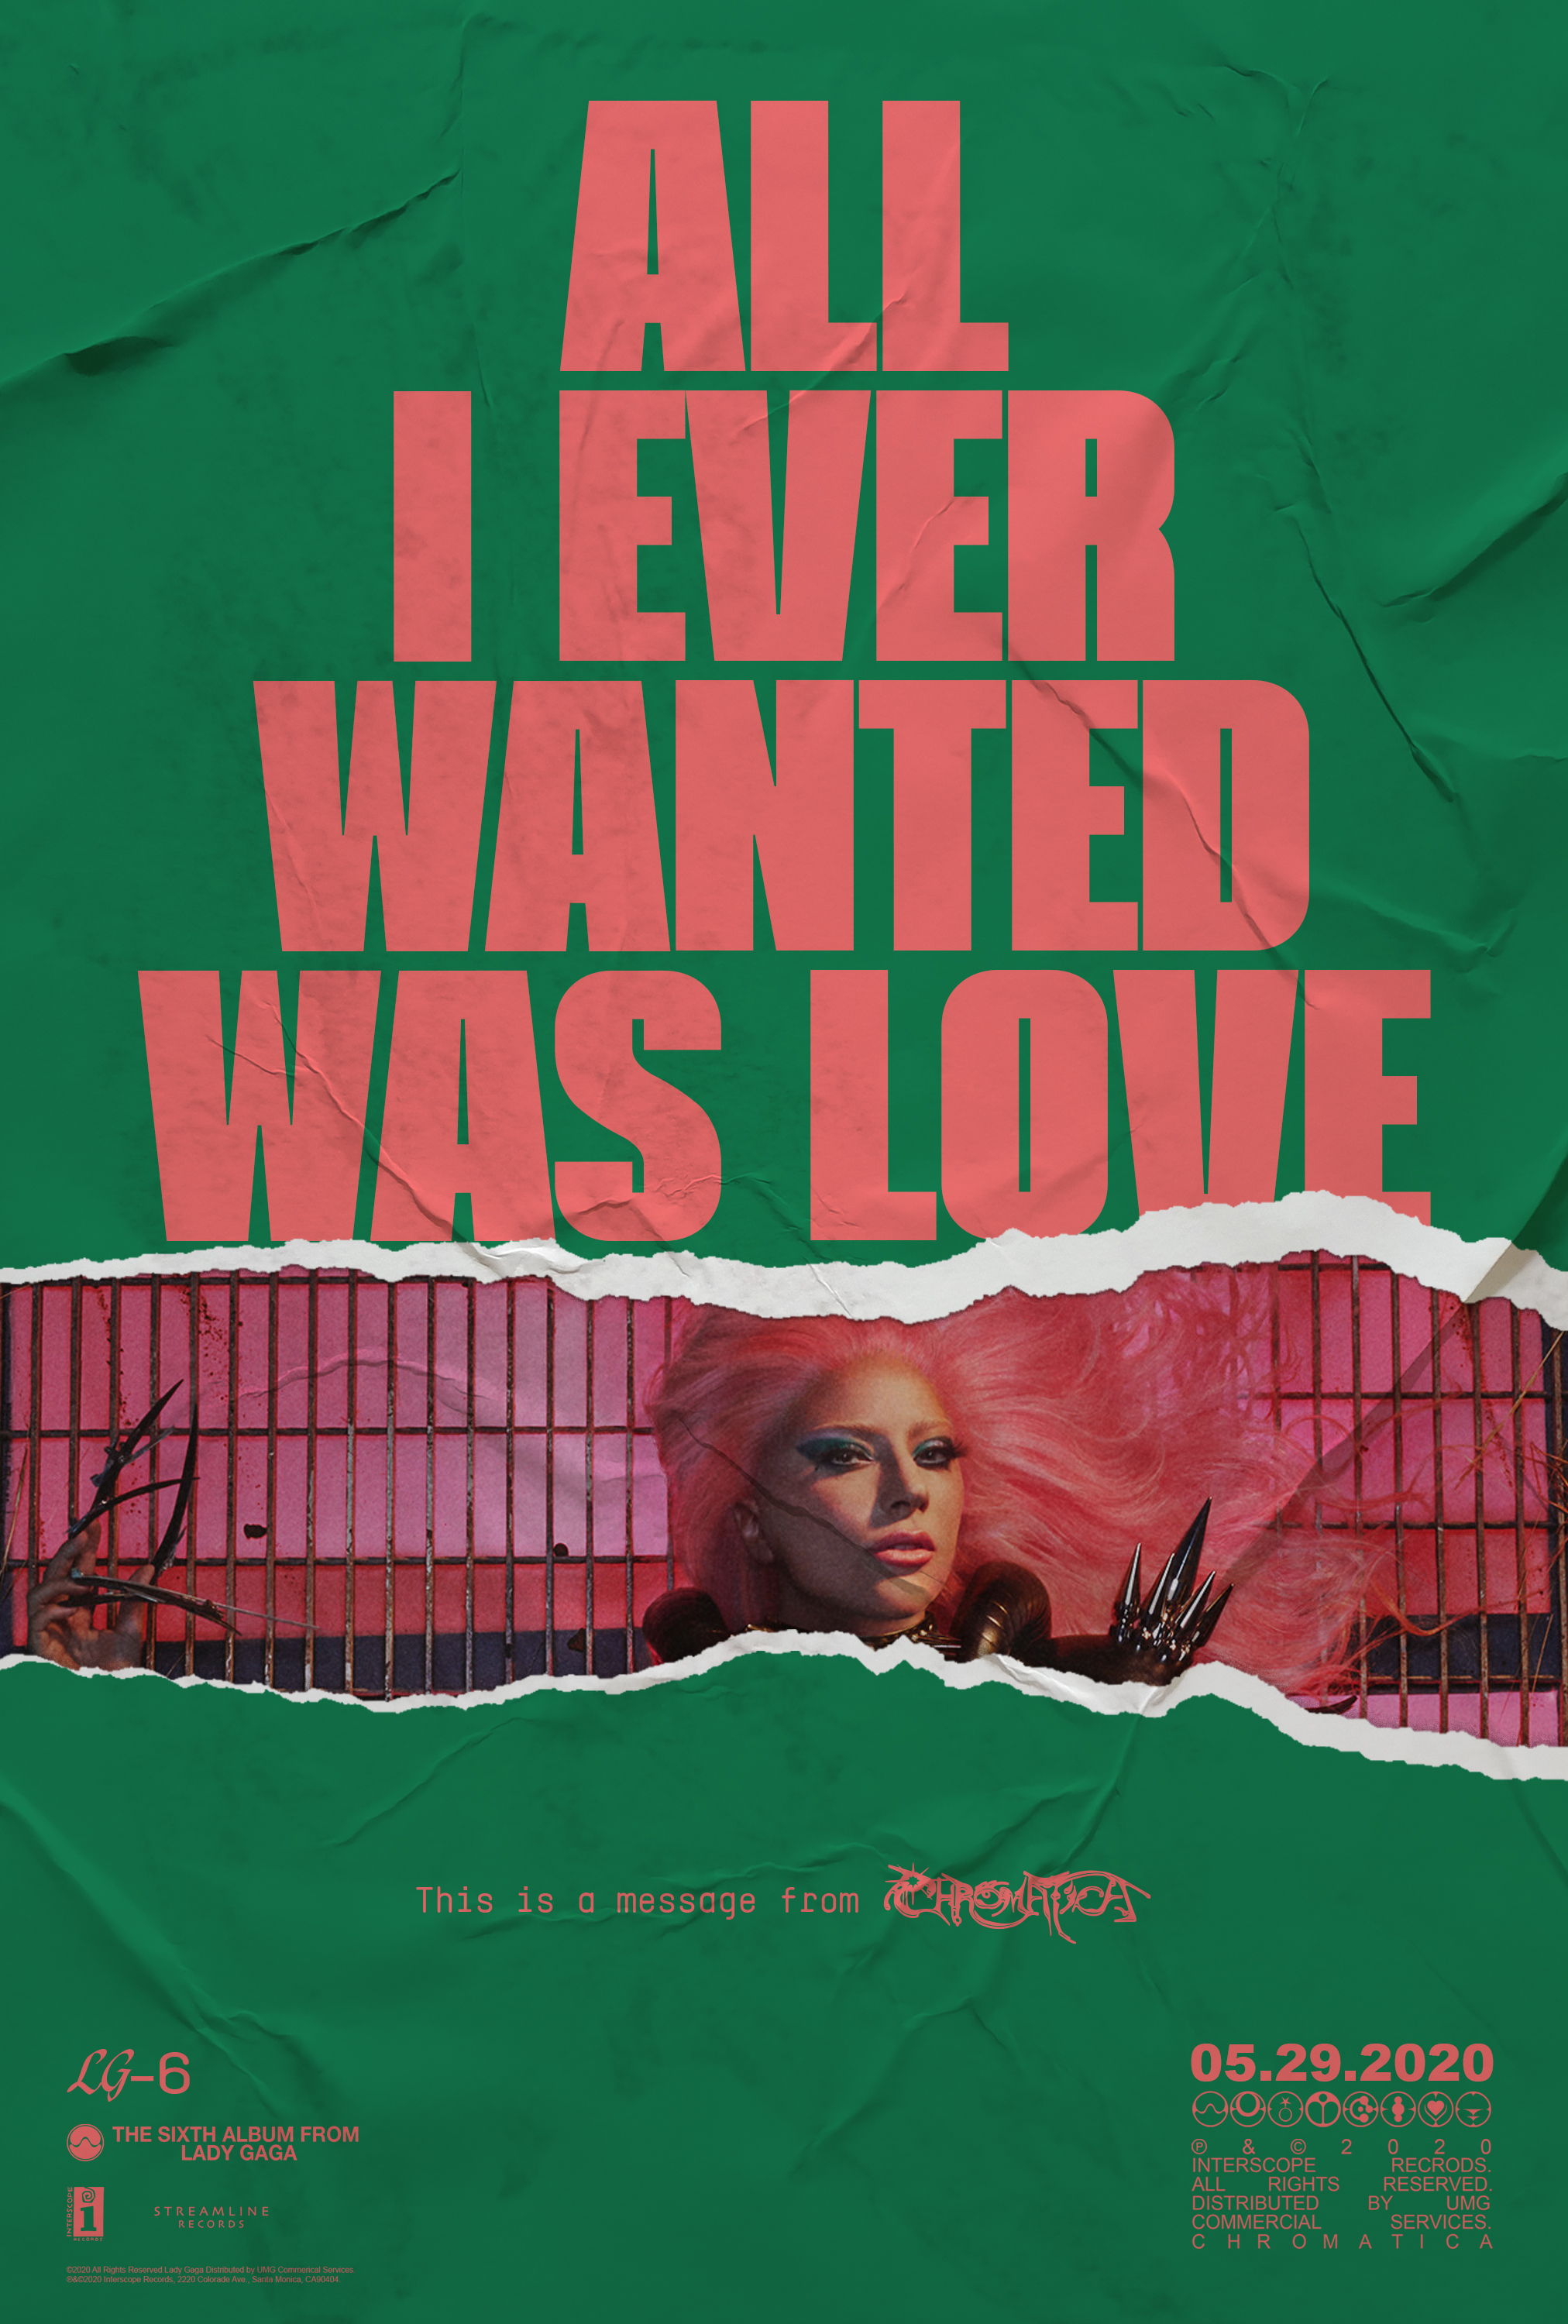 All-I-Ever-Wanted-Was-Love.jpg